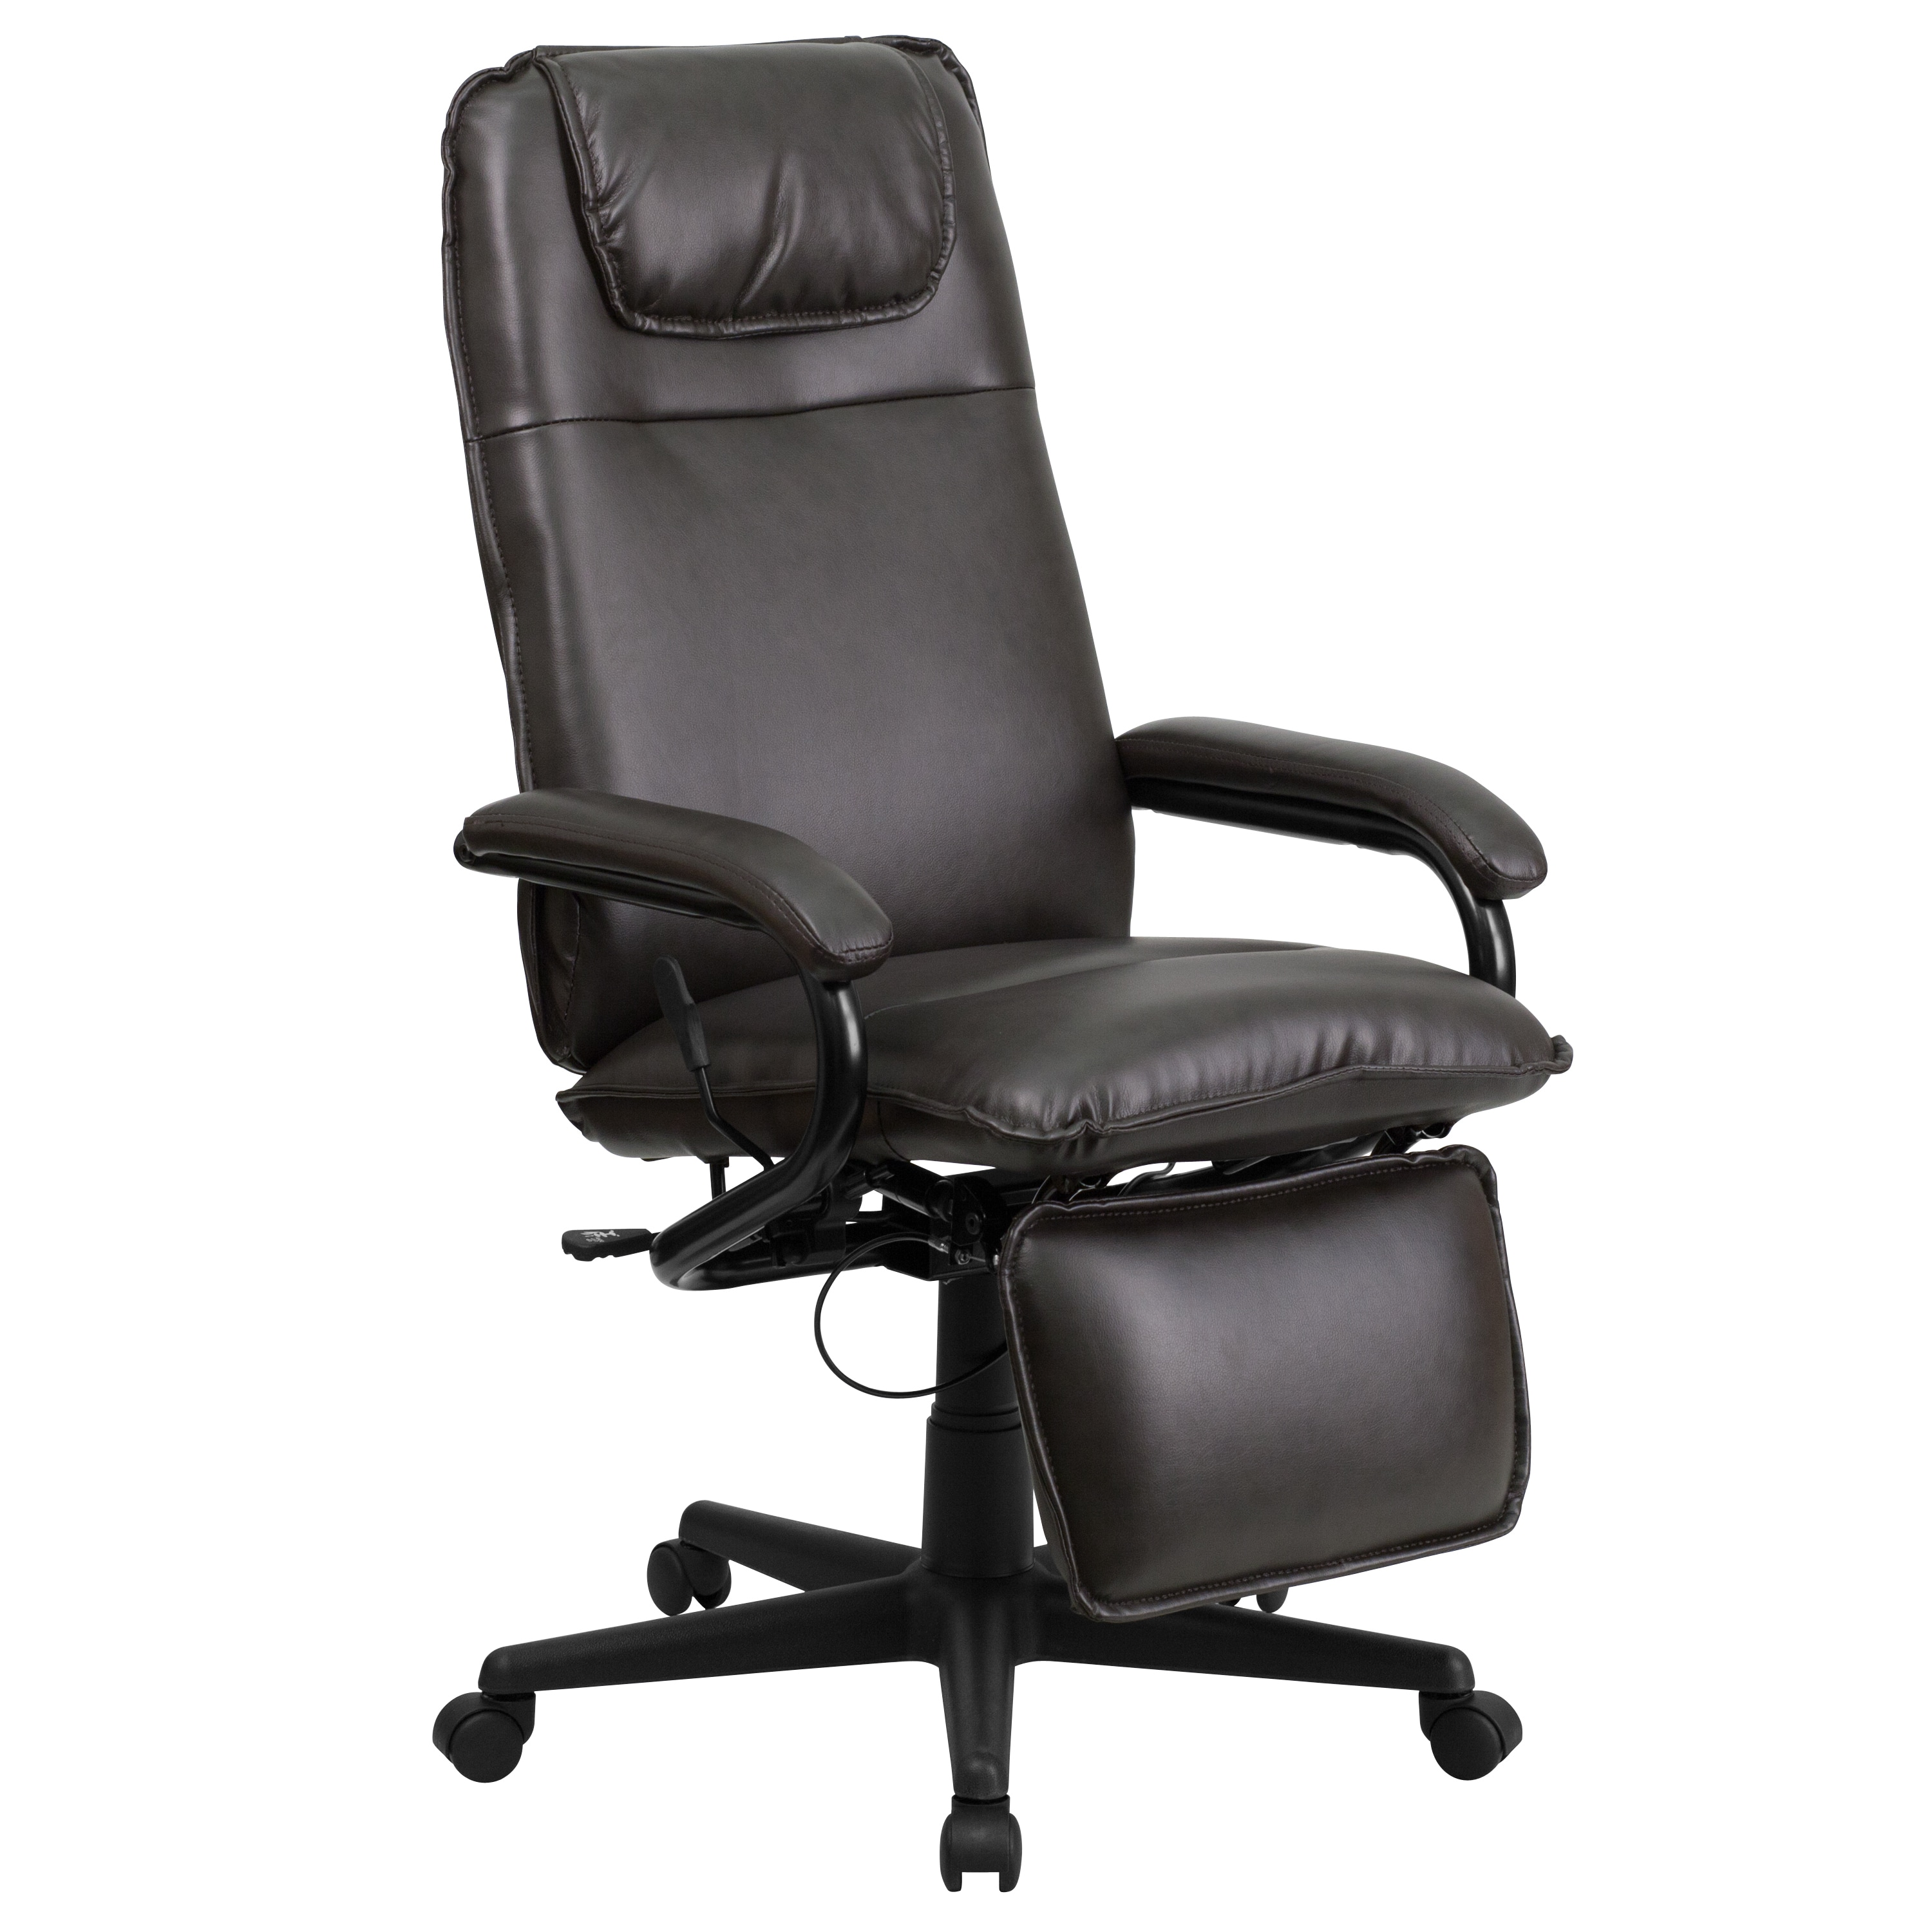 High Back Leather Executive Reclining Office Chair Free Shipping Today 10125296